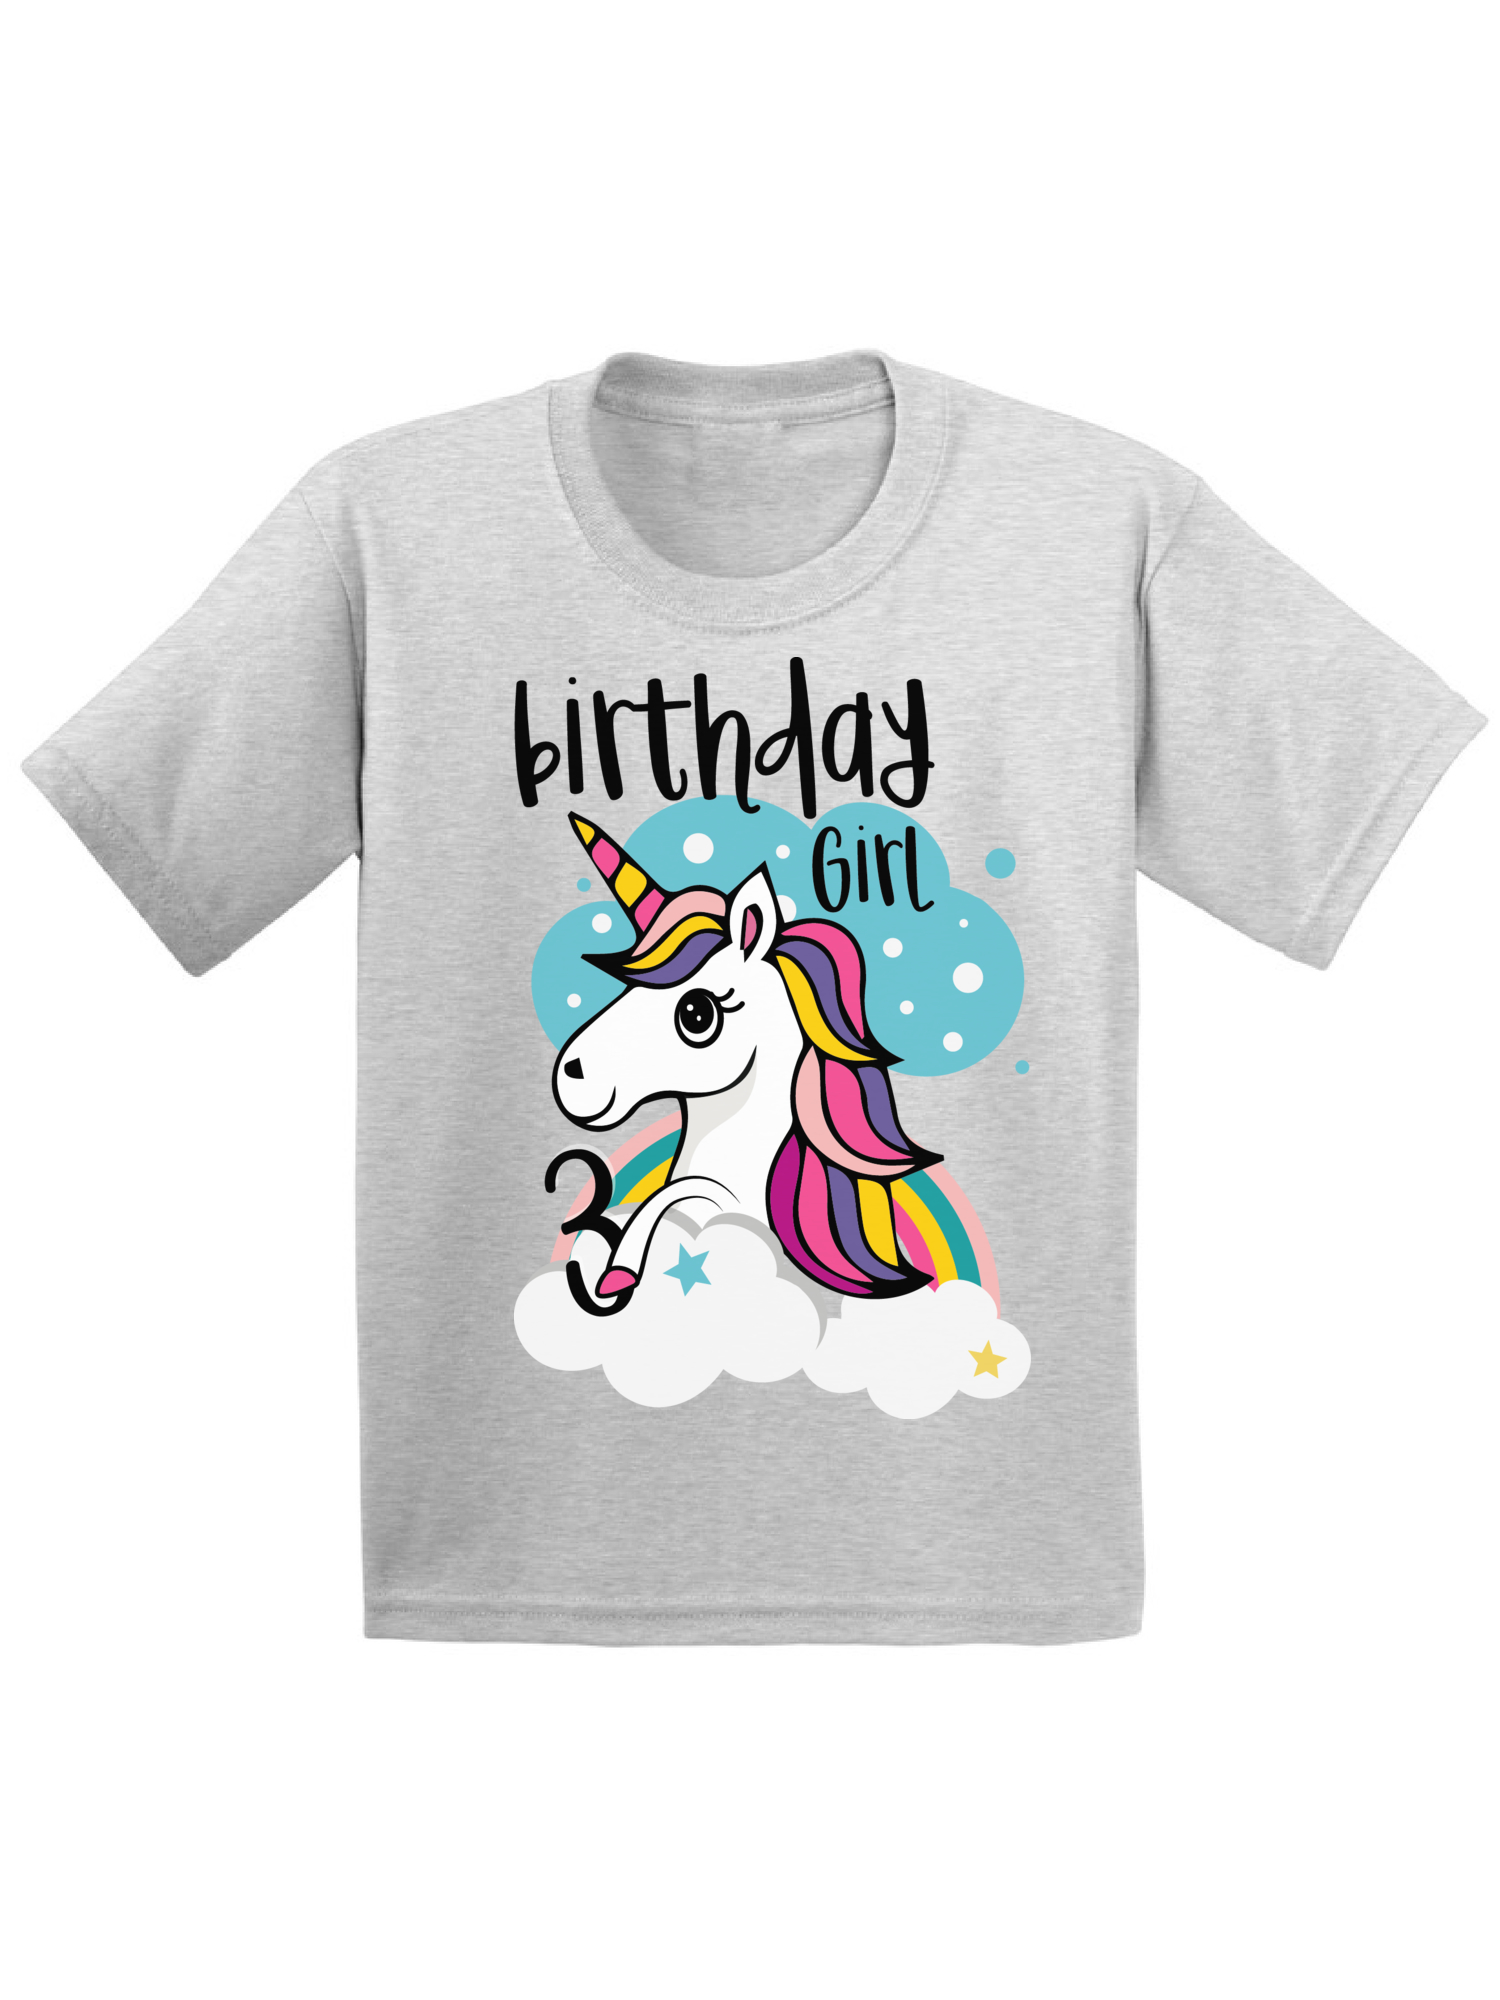 Awkward Styles Birthday Girl Toddler Shirt Unicorn Tshirt For Girls 3rd Party Rainbow Little